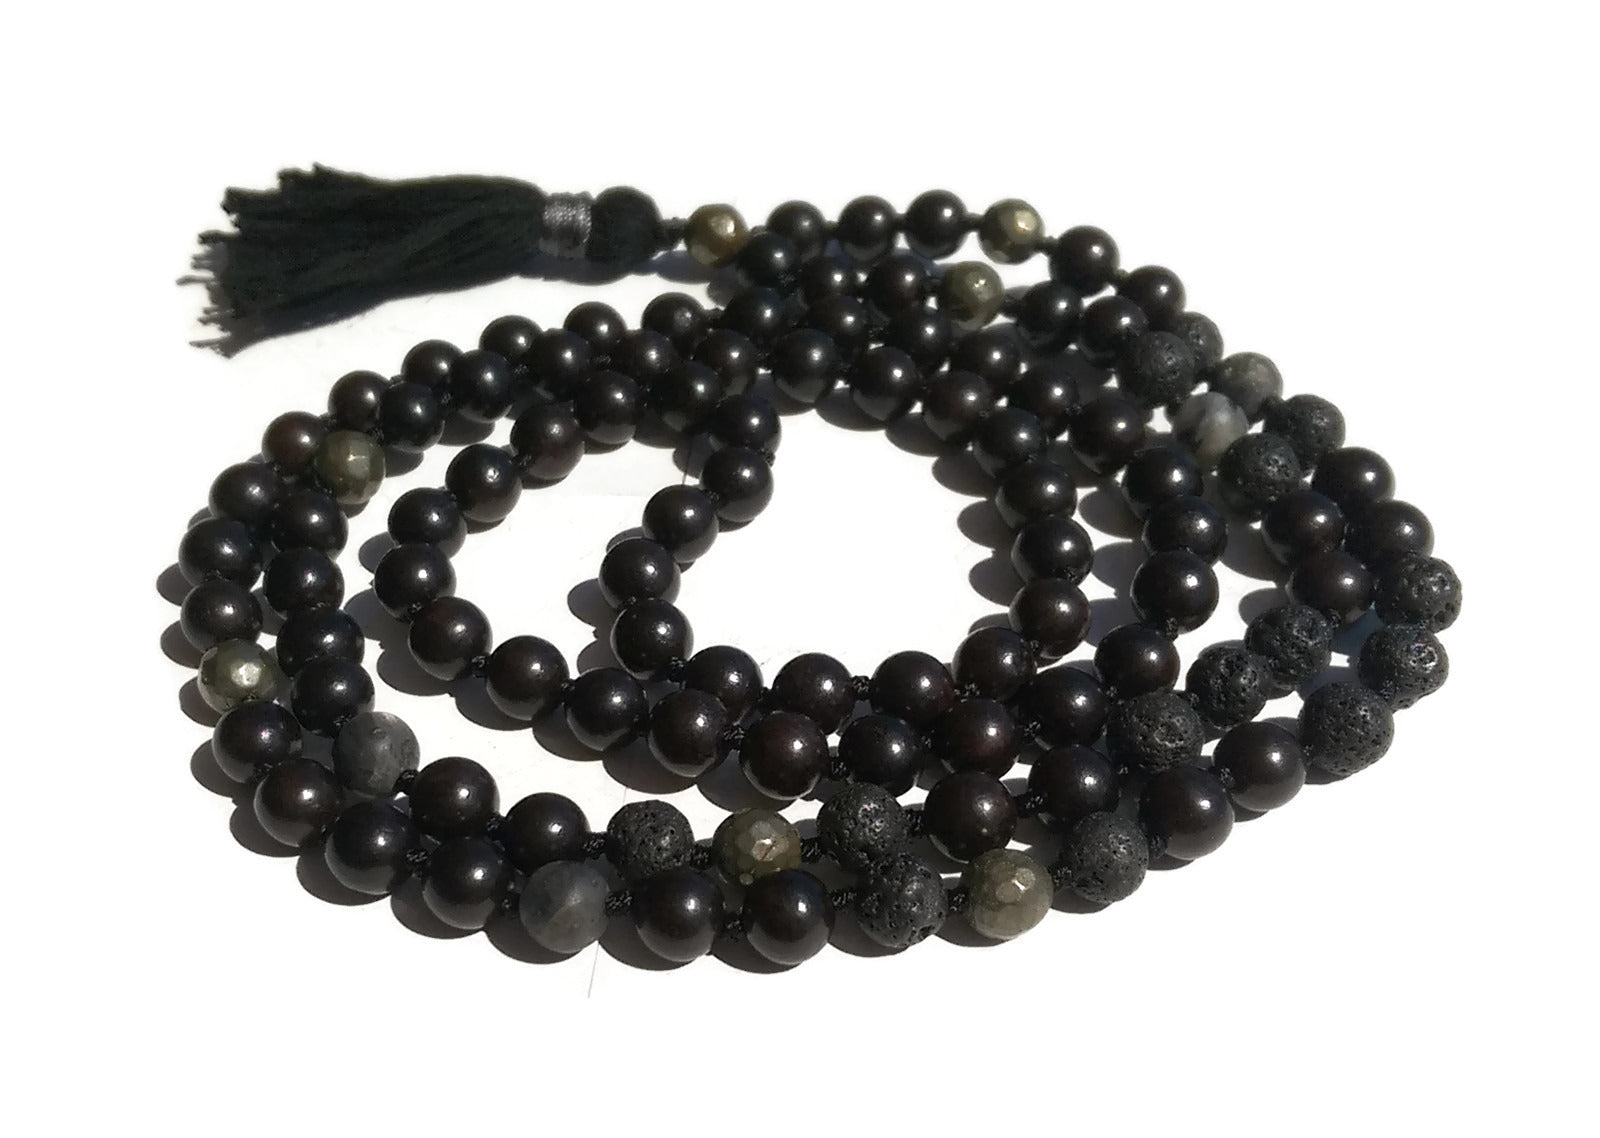 Pure Collection 8mm Ebony Lava Labradorite Pyrite Traditional Hand Knotted 108 Bead Meditation Mala Necklace Crown Chakra Yoga Energy Focus